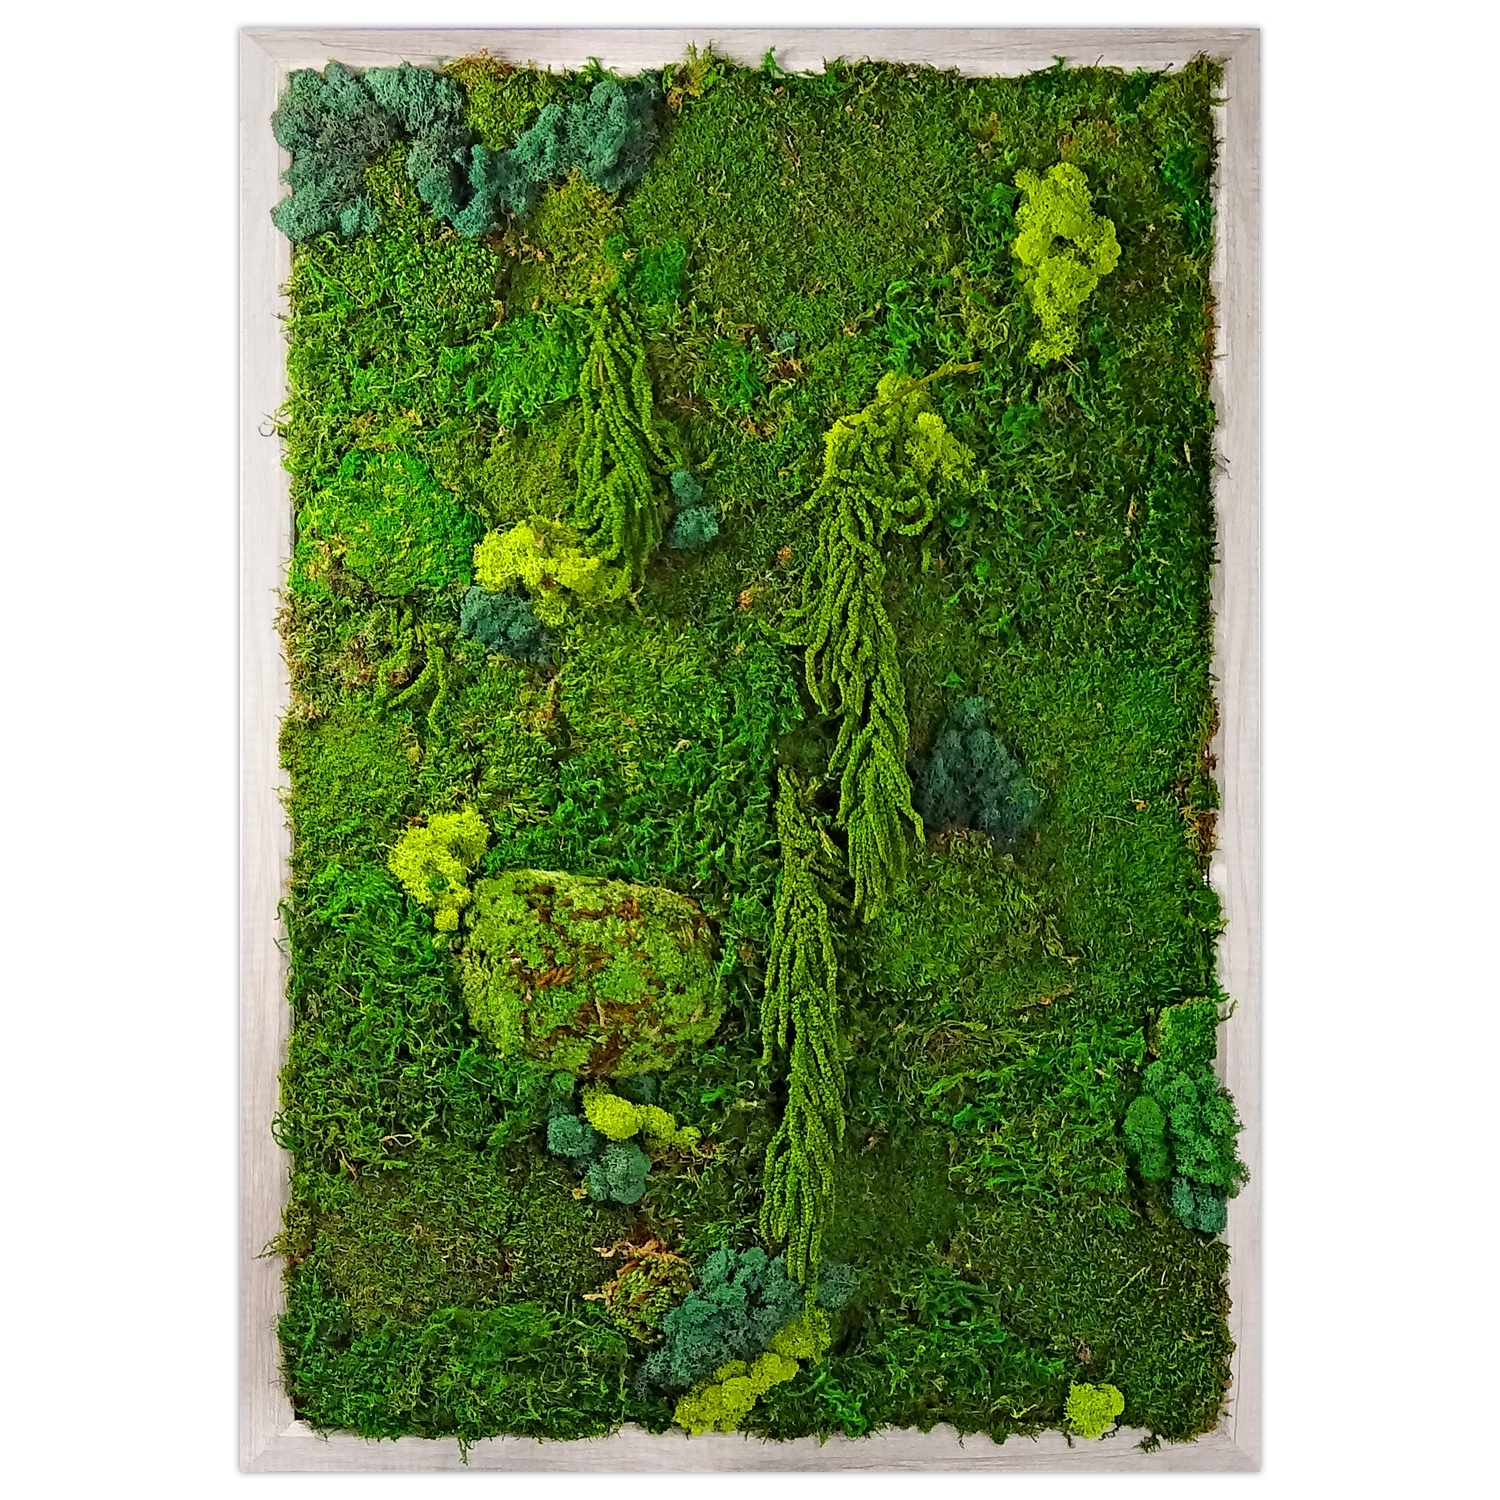 Preserved Moss Wall Garden | Luludi Living Art | Ahalife with Moss Wall Art (Image 16 of 20)